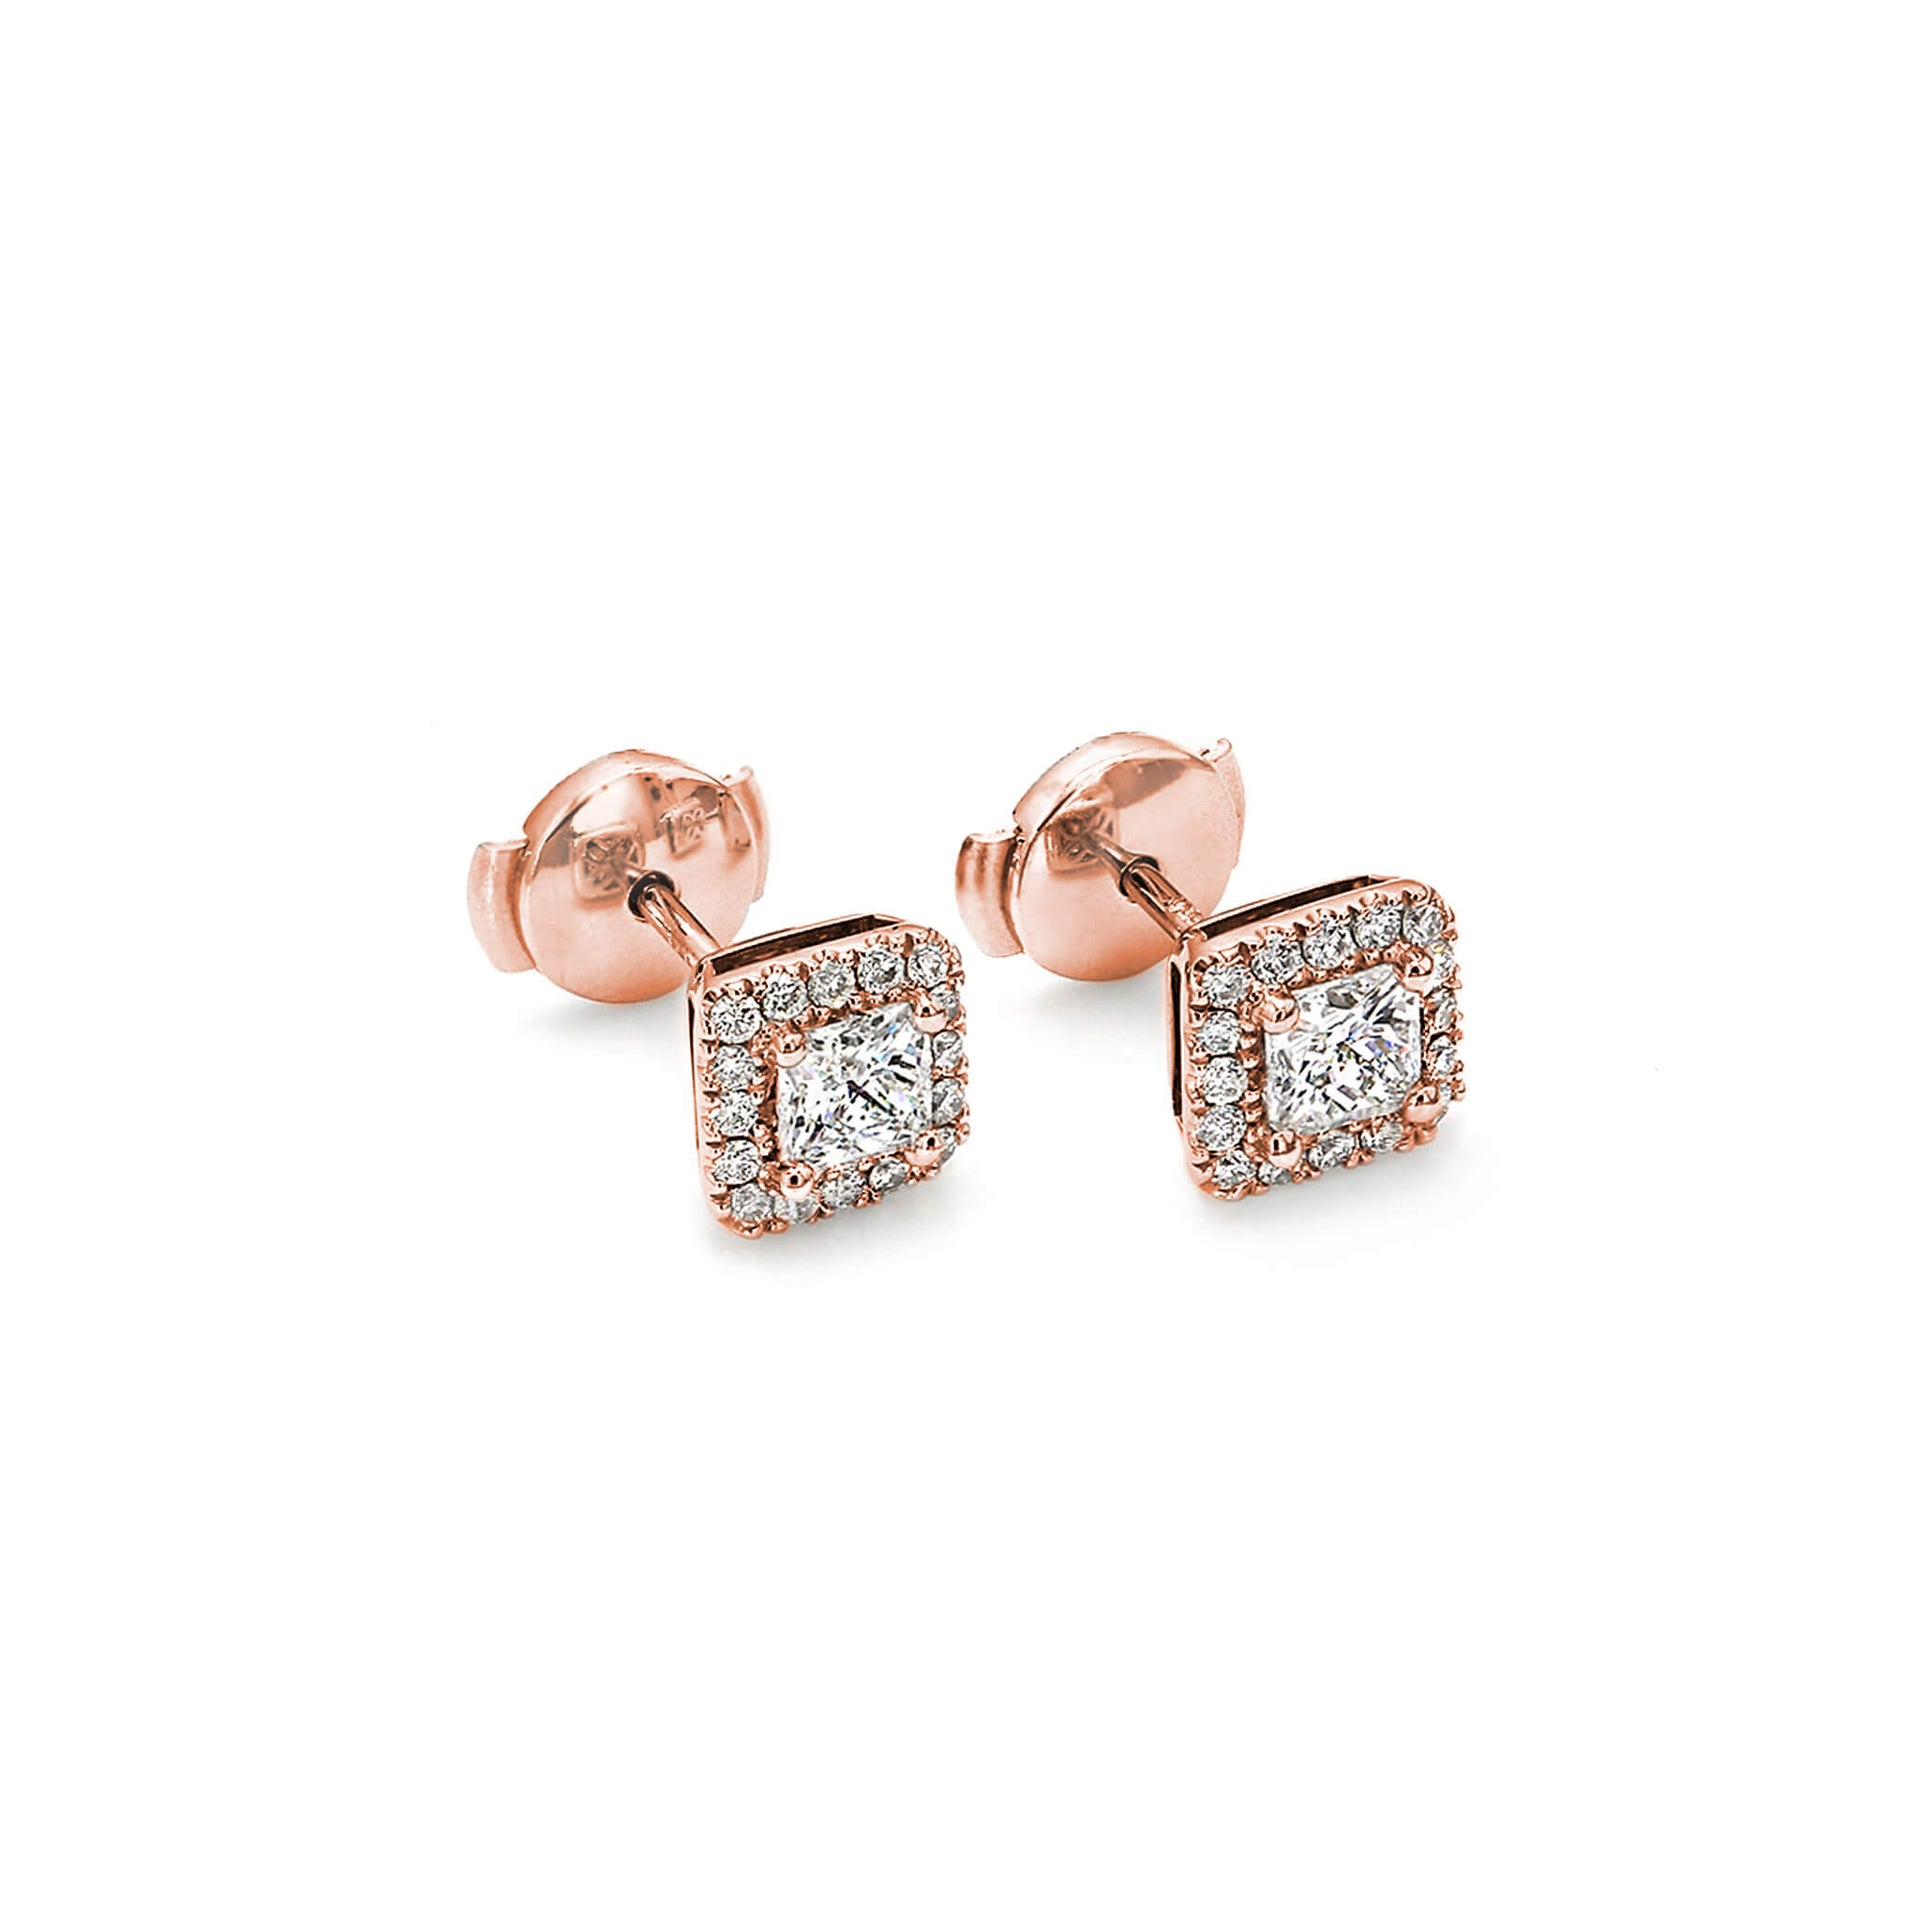 0.85 Carat My Girl Halo Design Diamond Stud Earrings in 18K Rose Gold 3D View